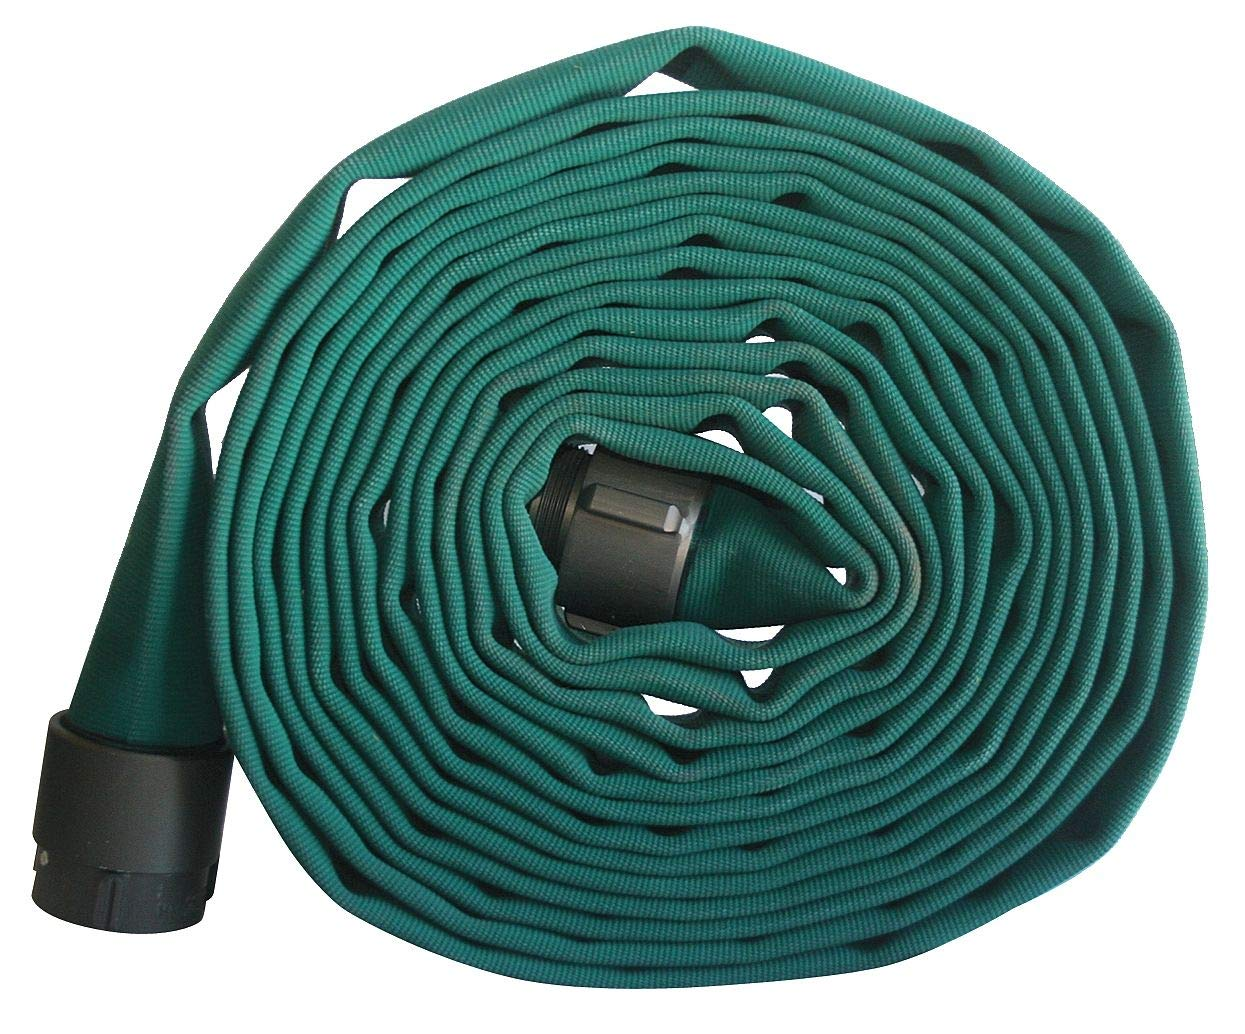 Armored Textiles Supply Line Fire Hose, Double Jacket, 3'' Hose Inside Dia, 50 ft, Green - G52H3HDG50N